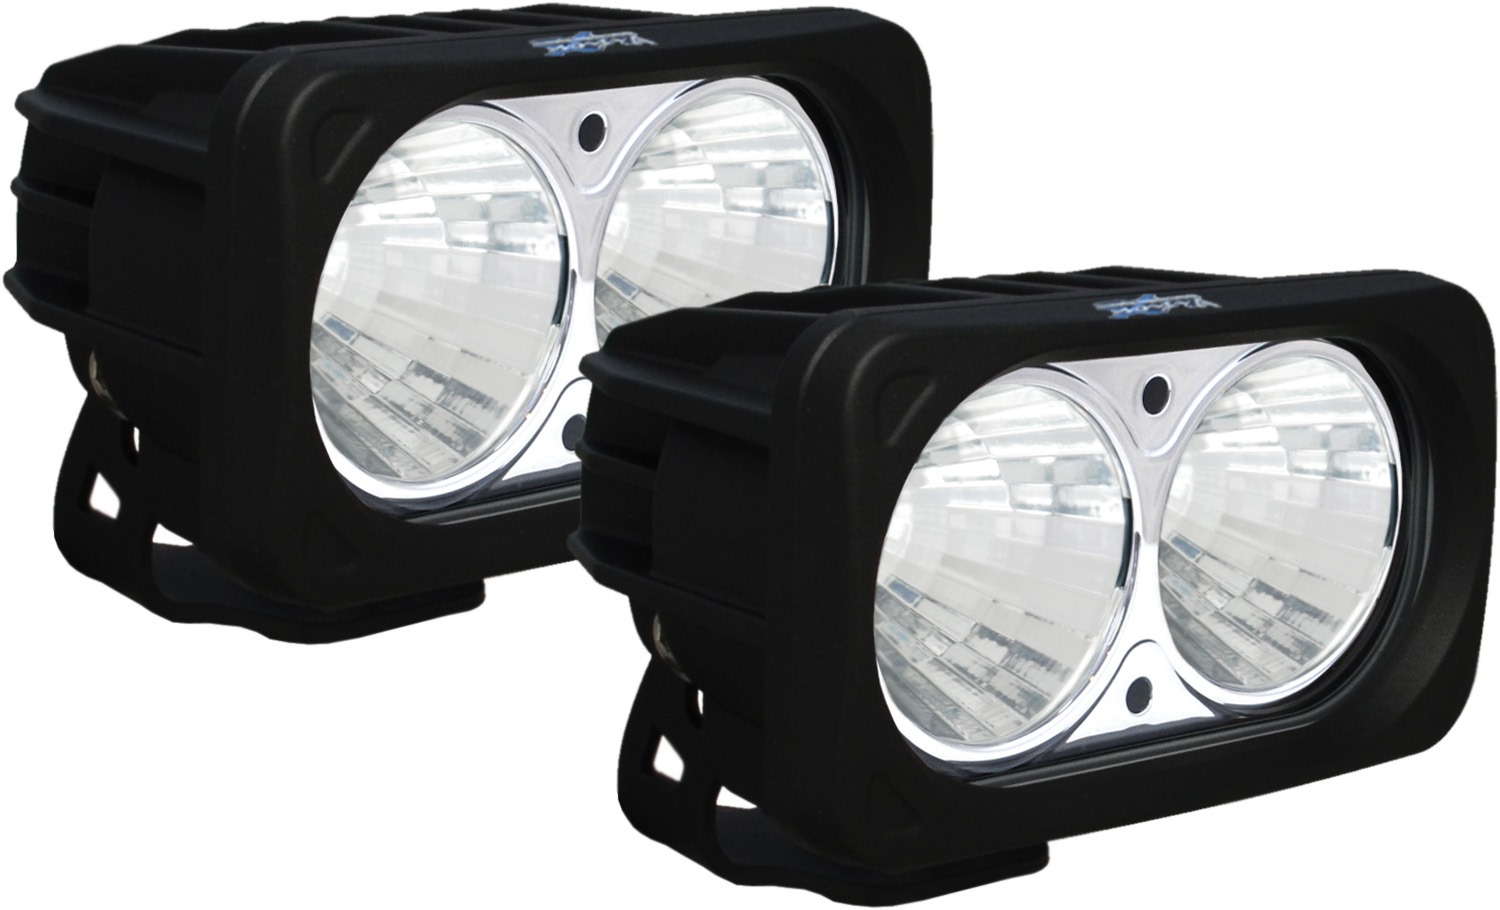 OPTIMUS SQUARE BLACK 2 10W LEDS 20° MEDIUM KIT OF 2 LIGHTS